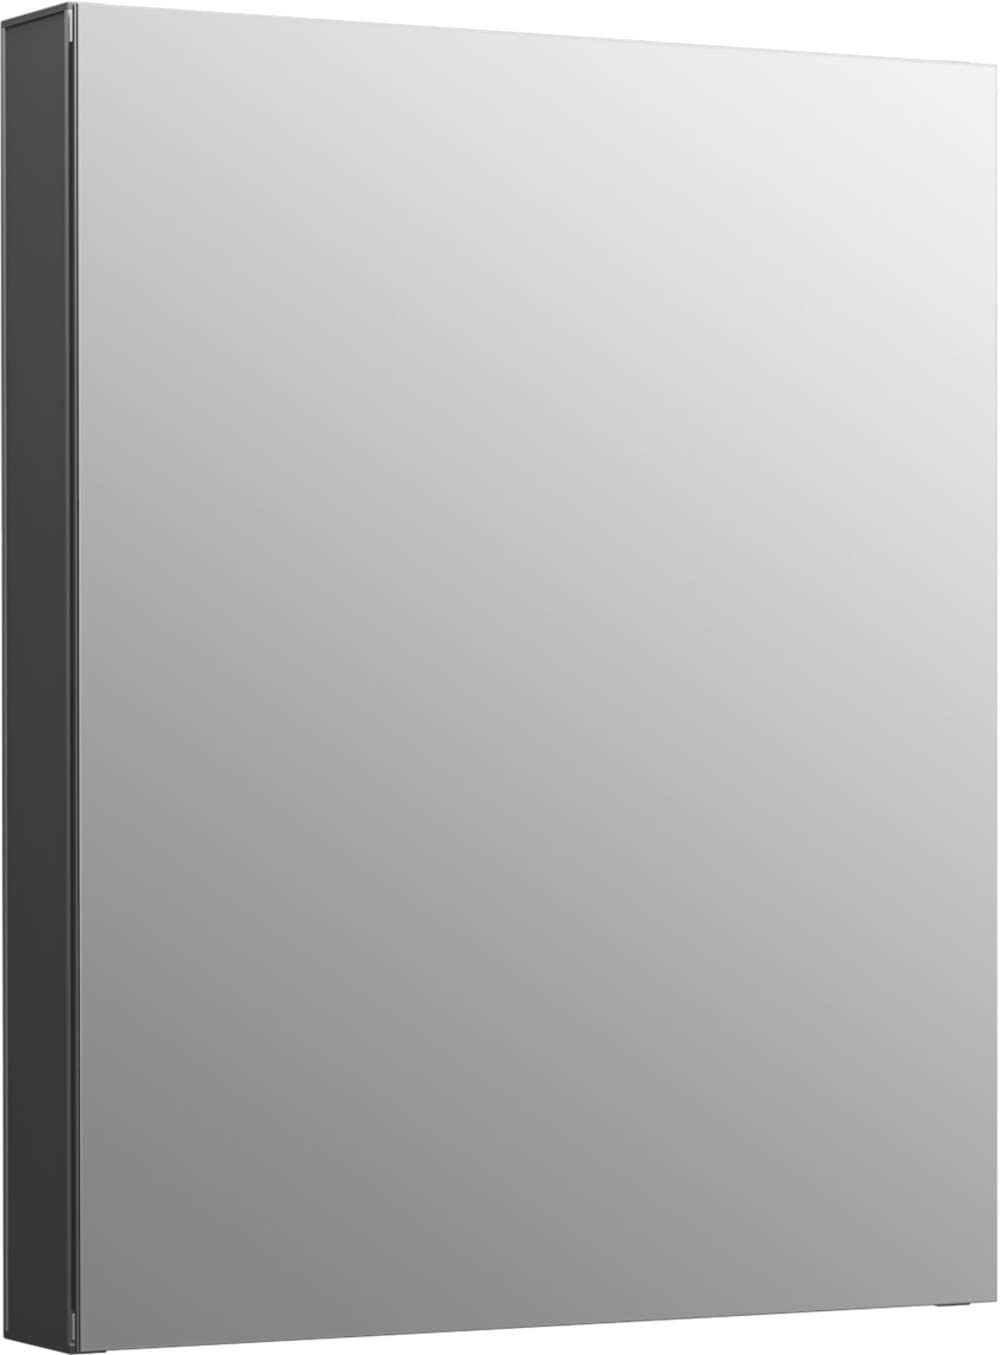 Kohler K-81145-DA1 Maxstow Frameless Surface Mount Bathroom Medicine Cabinet, 20